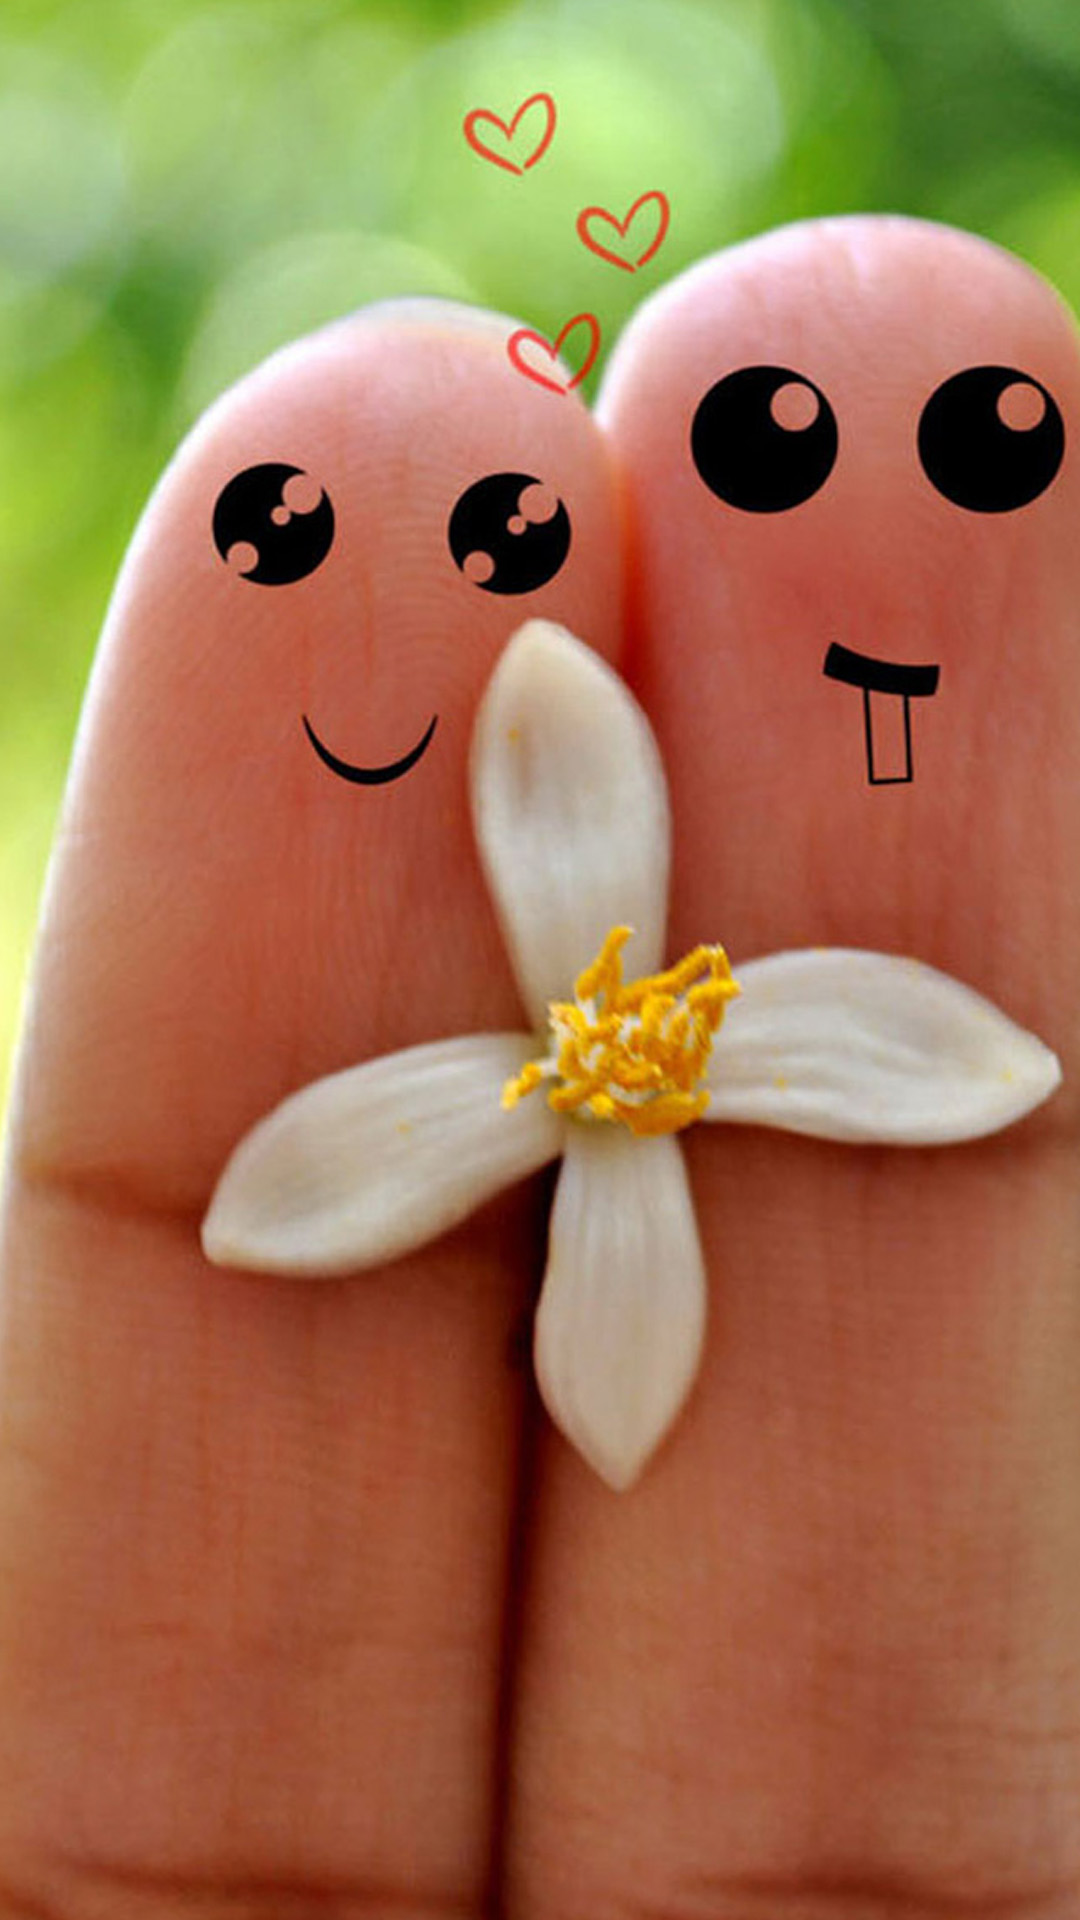 Cute Love Cartoon Couple Wallpapers For Iphone